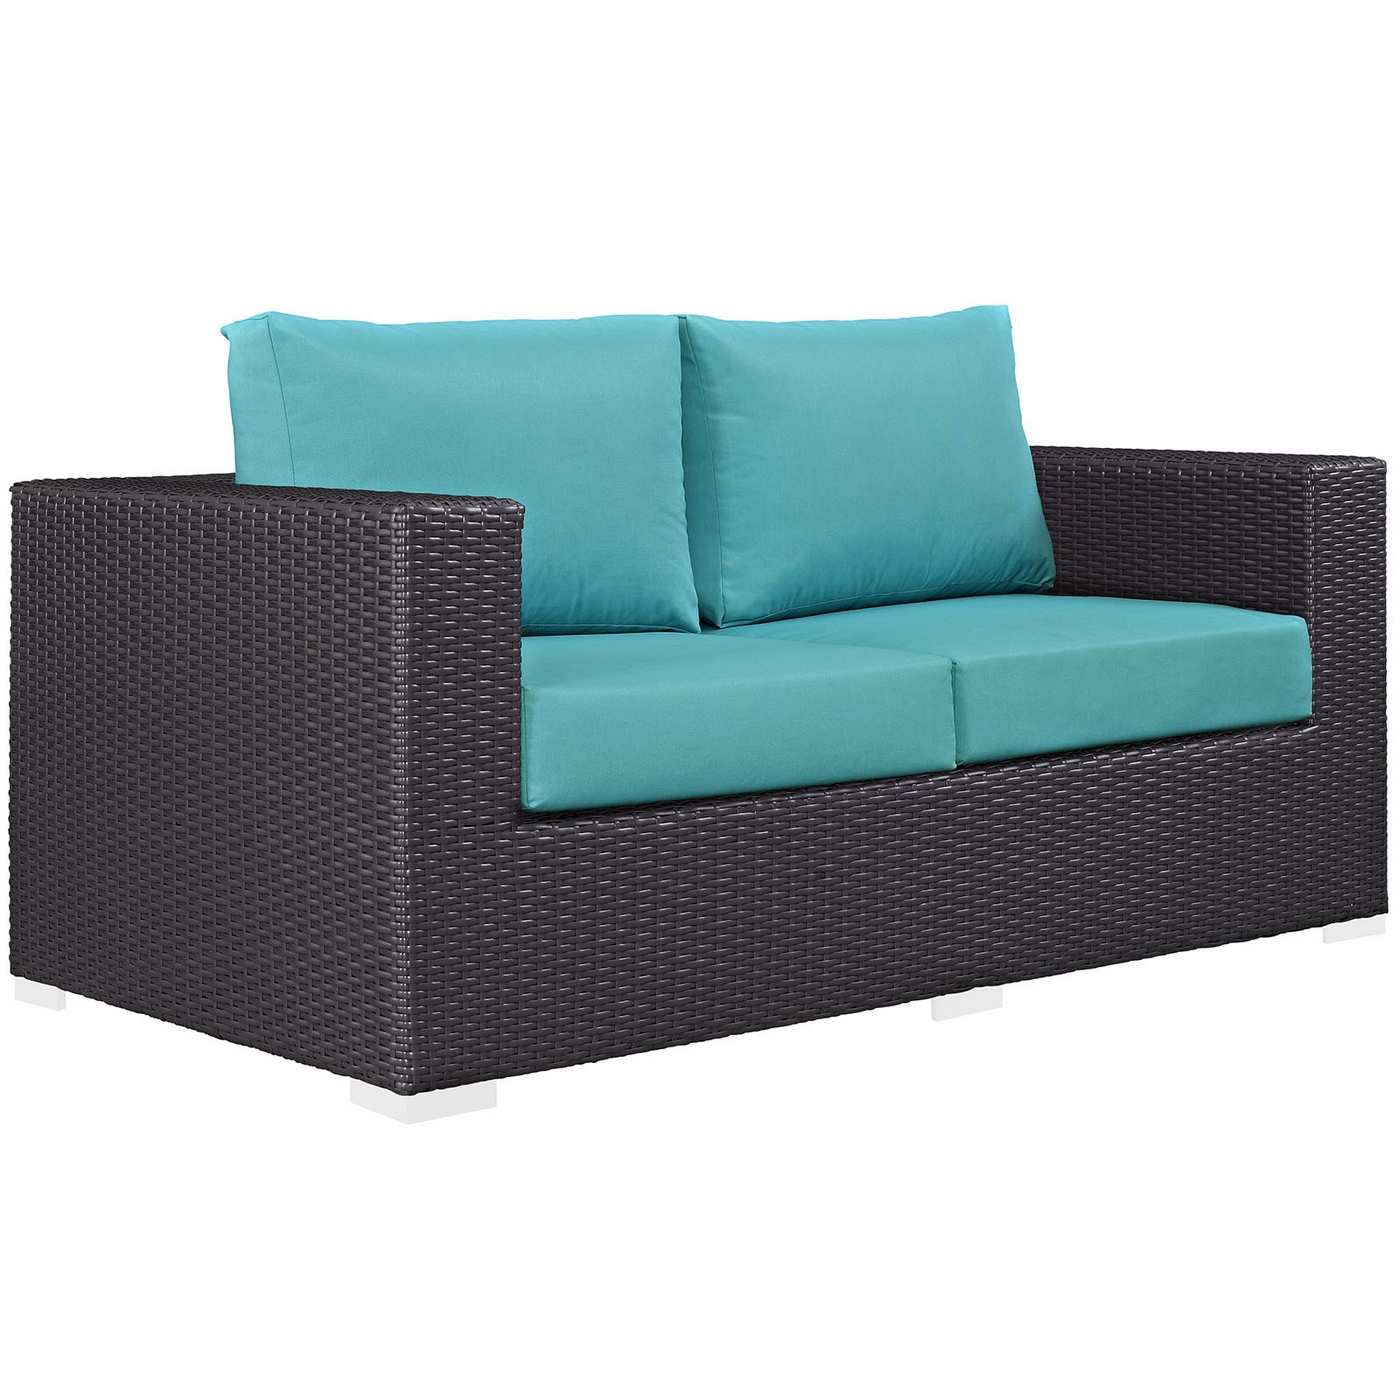 Convene modern rattan outdoor patio loveseat w cushions espresso turquoise Patio loveseat cushion